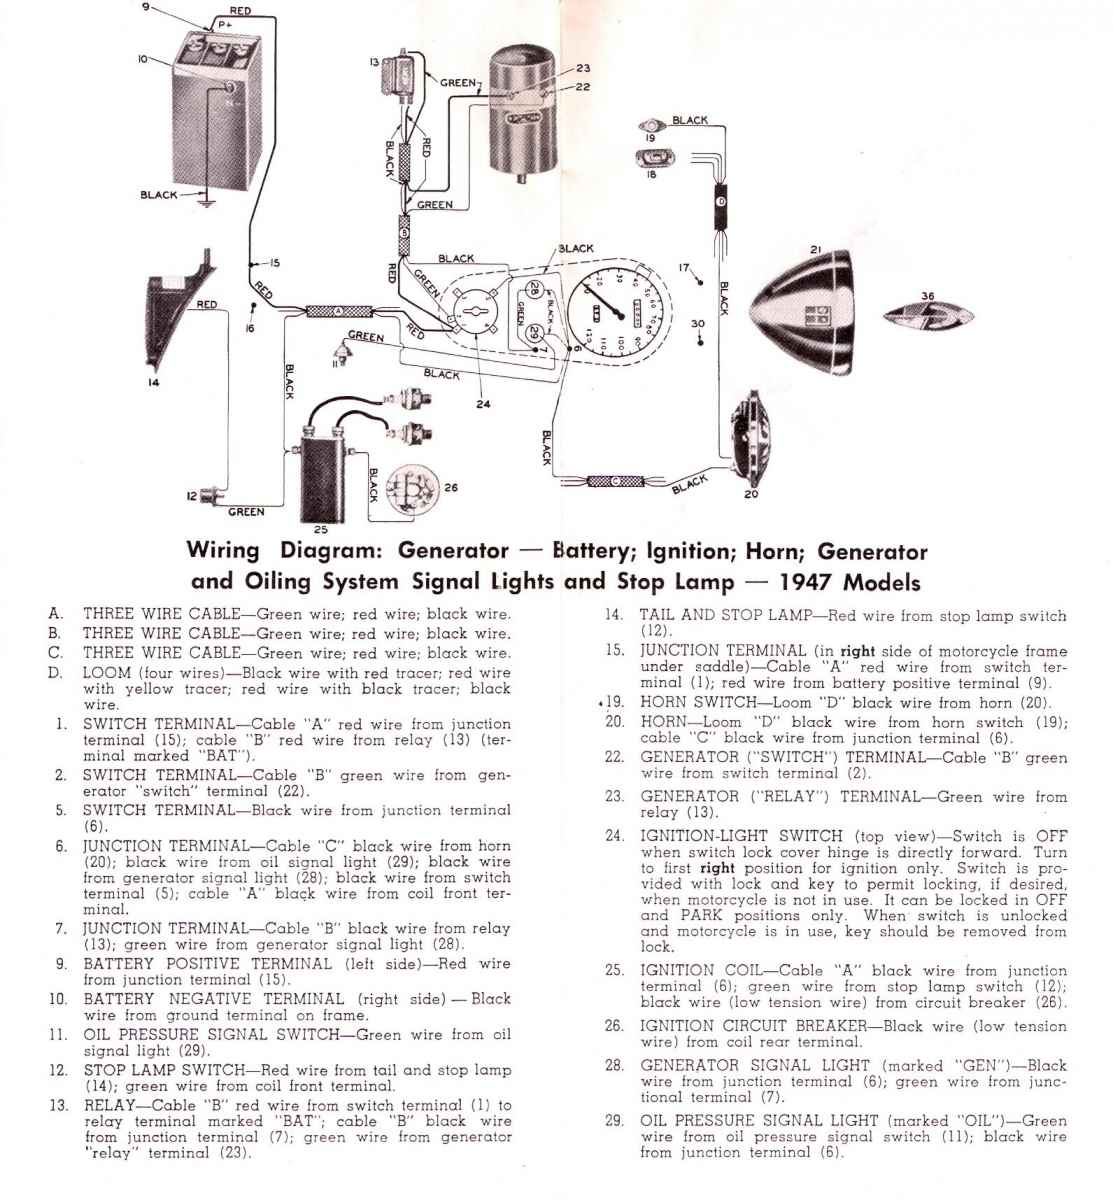 1947 Wiring Diagrams on smart car diagrams, electronic circuit diagrams, lighting diagrams, honda motorcycle repair diagrams, switch diagrams, electrical diagrams, internet of things diagrams, battery diagrams, series and parallel circuits diagrams, transformer diagrams, led circuit diagrams, troubleshooting diagrams, pinout diagrams, hvac diagrams, engine diagrams, friendship bracelet diagrams, sincgars radio configurations diagrams, gmc fuse box diagrams, motor diagrams,